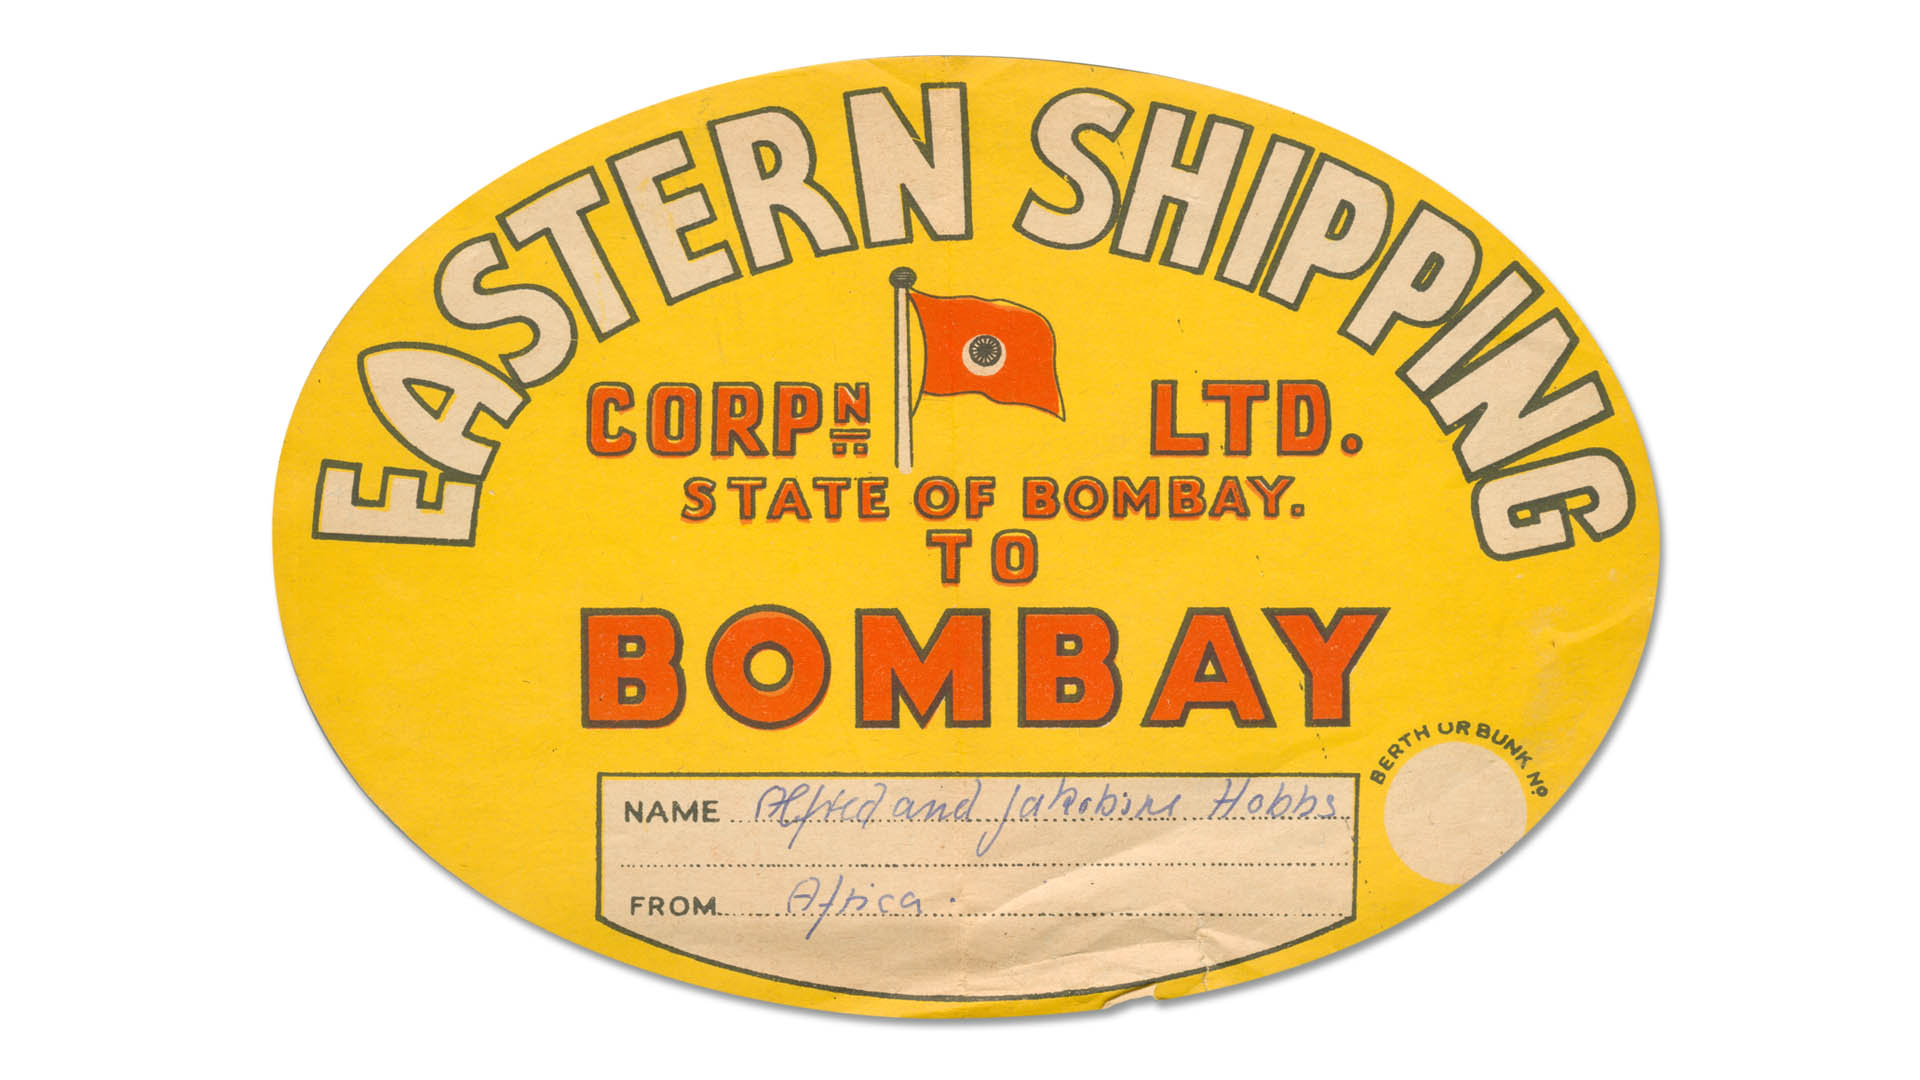 Bombay sticker copy.jpg